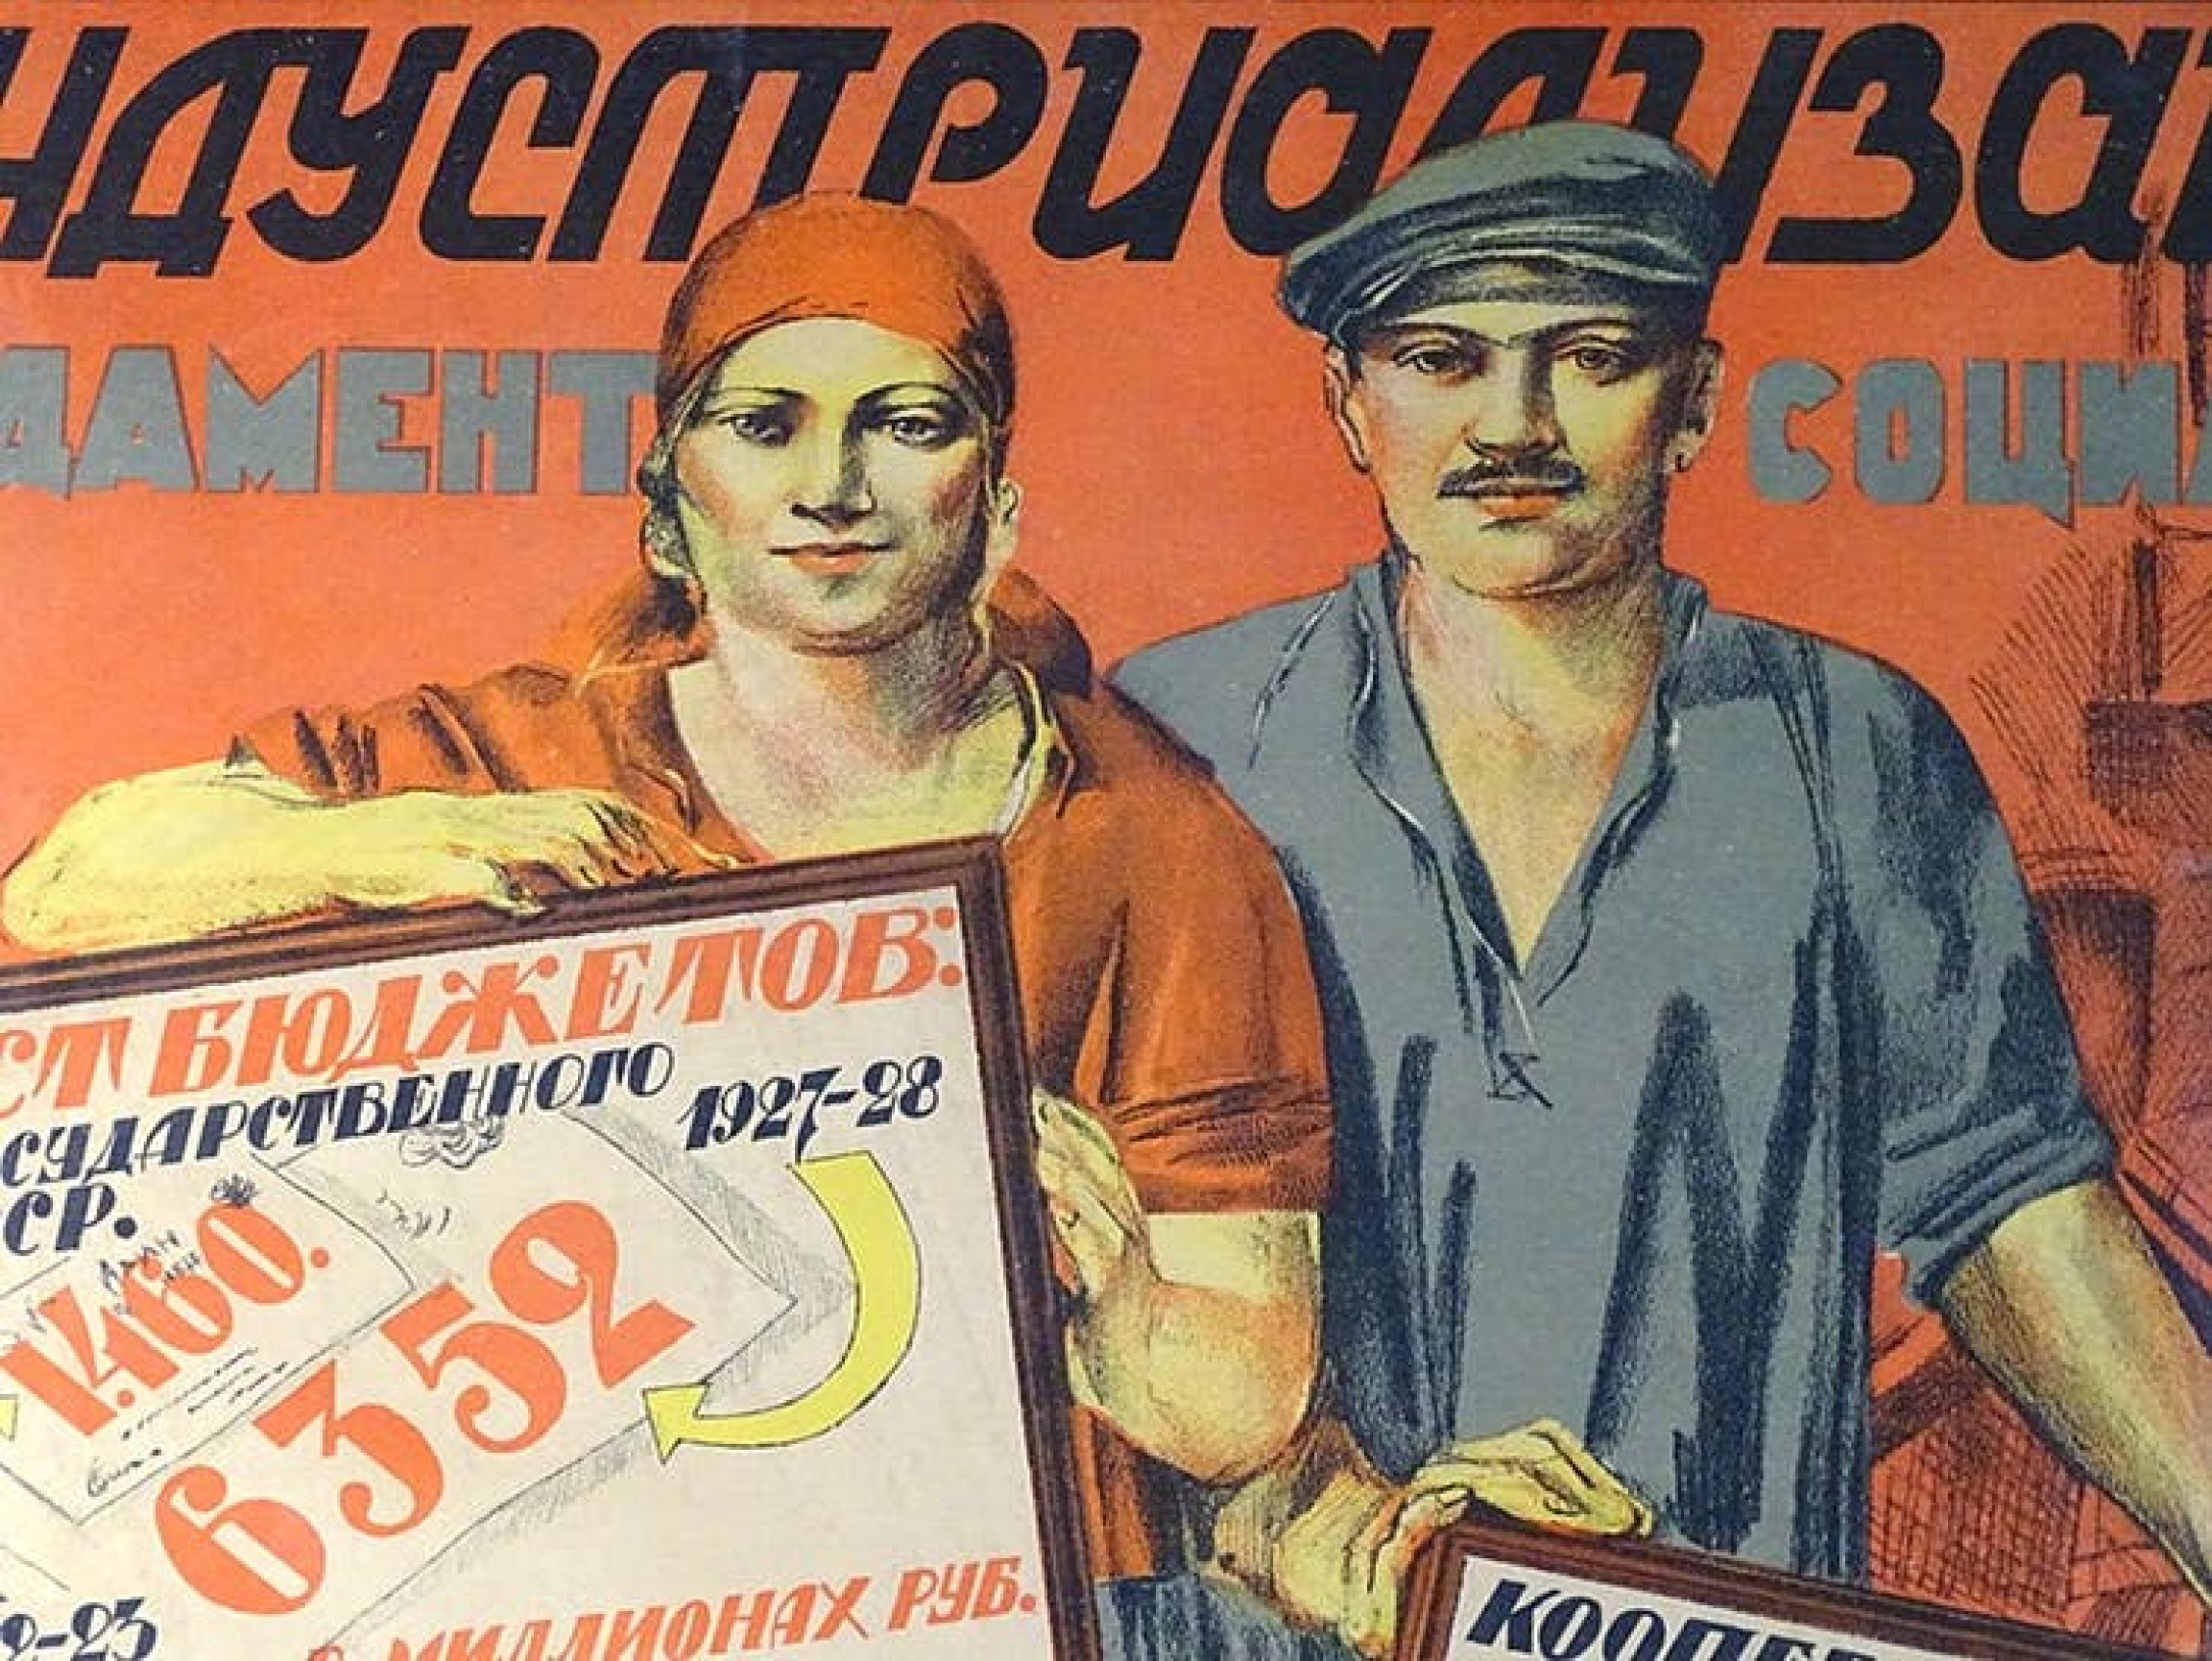 An old Soviet propaganda poster showing a man and a woman holding signs in Russian.